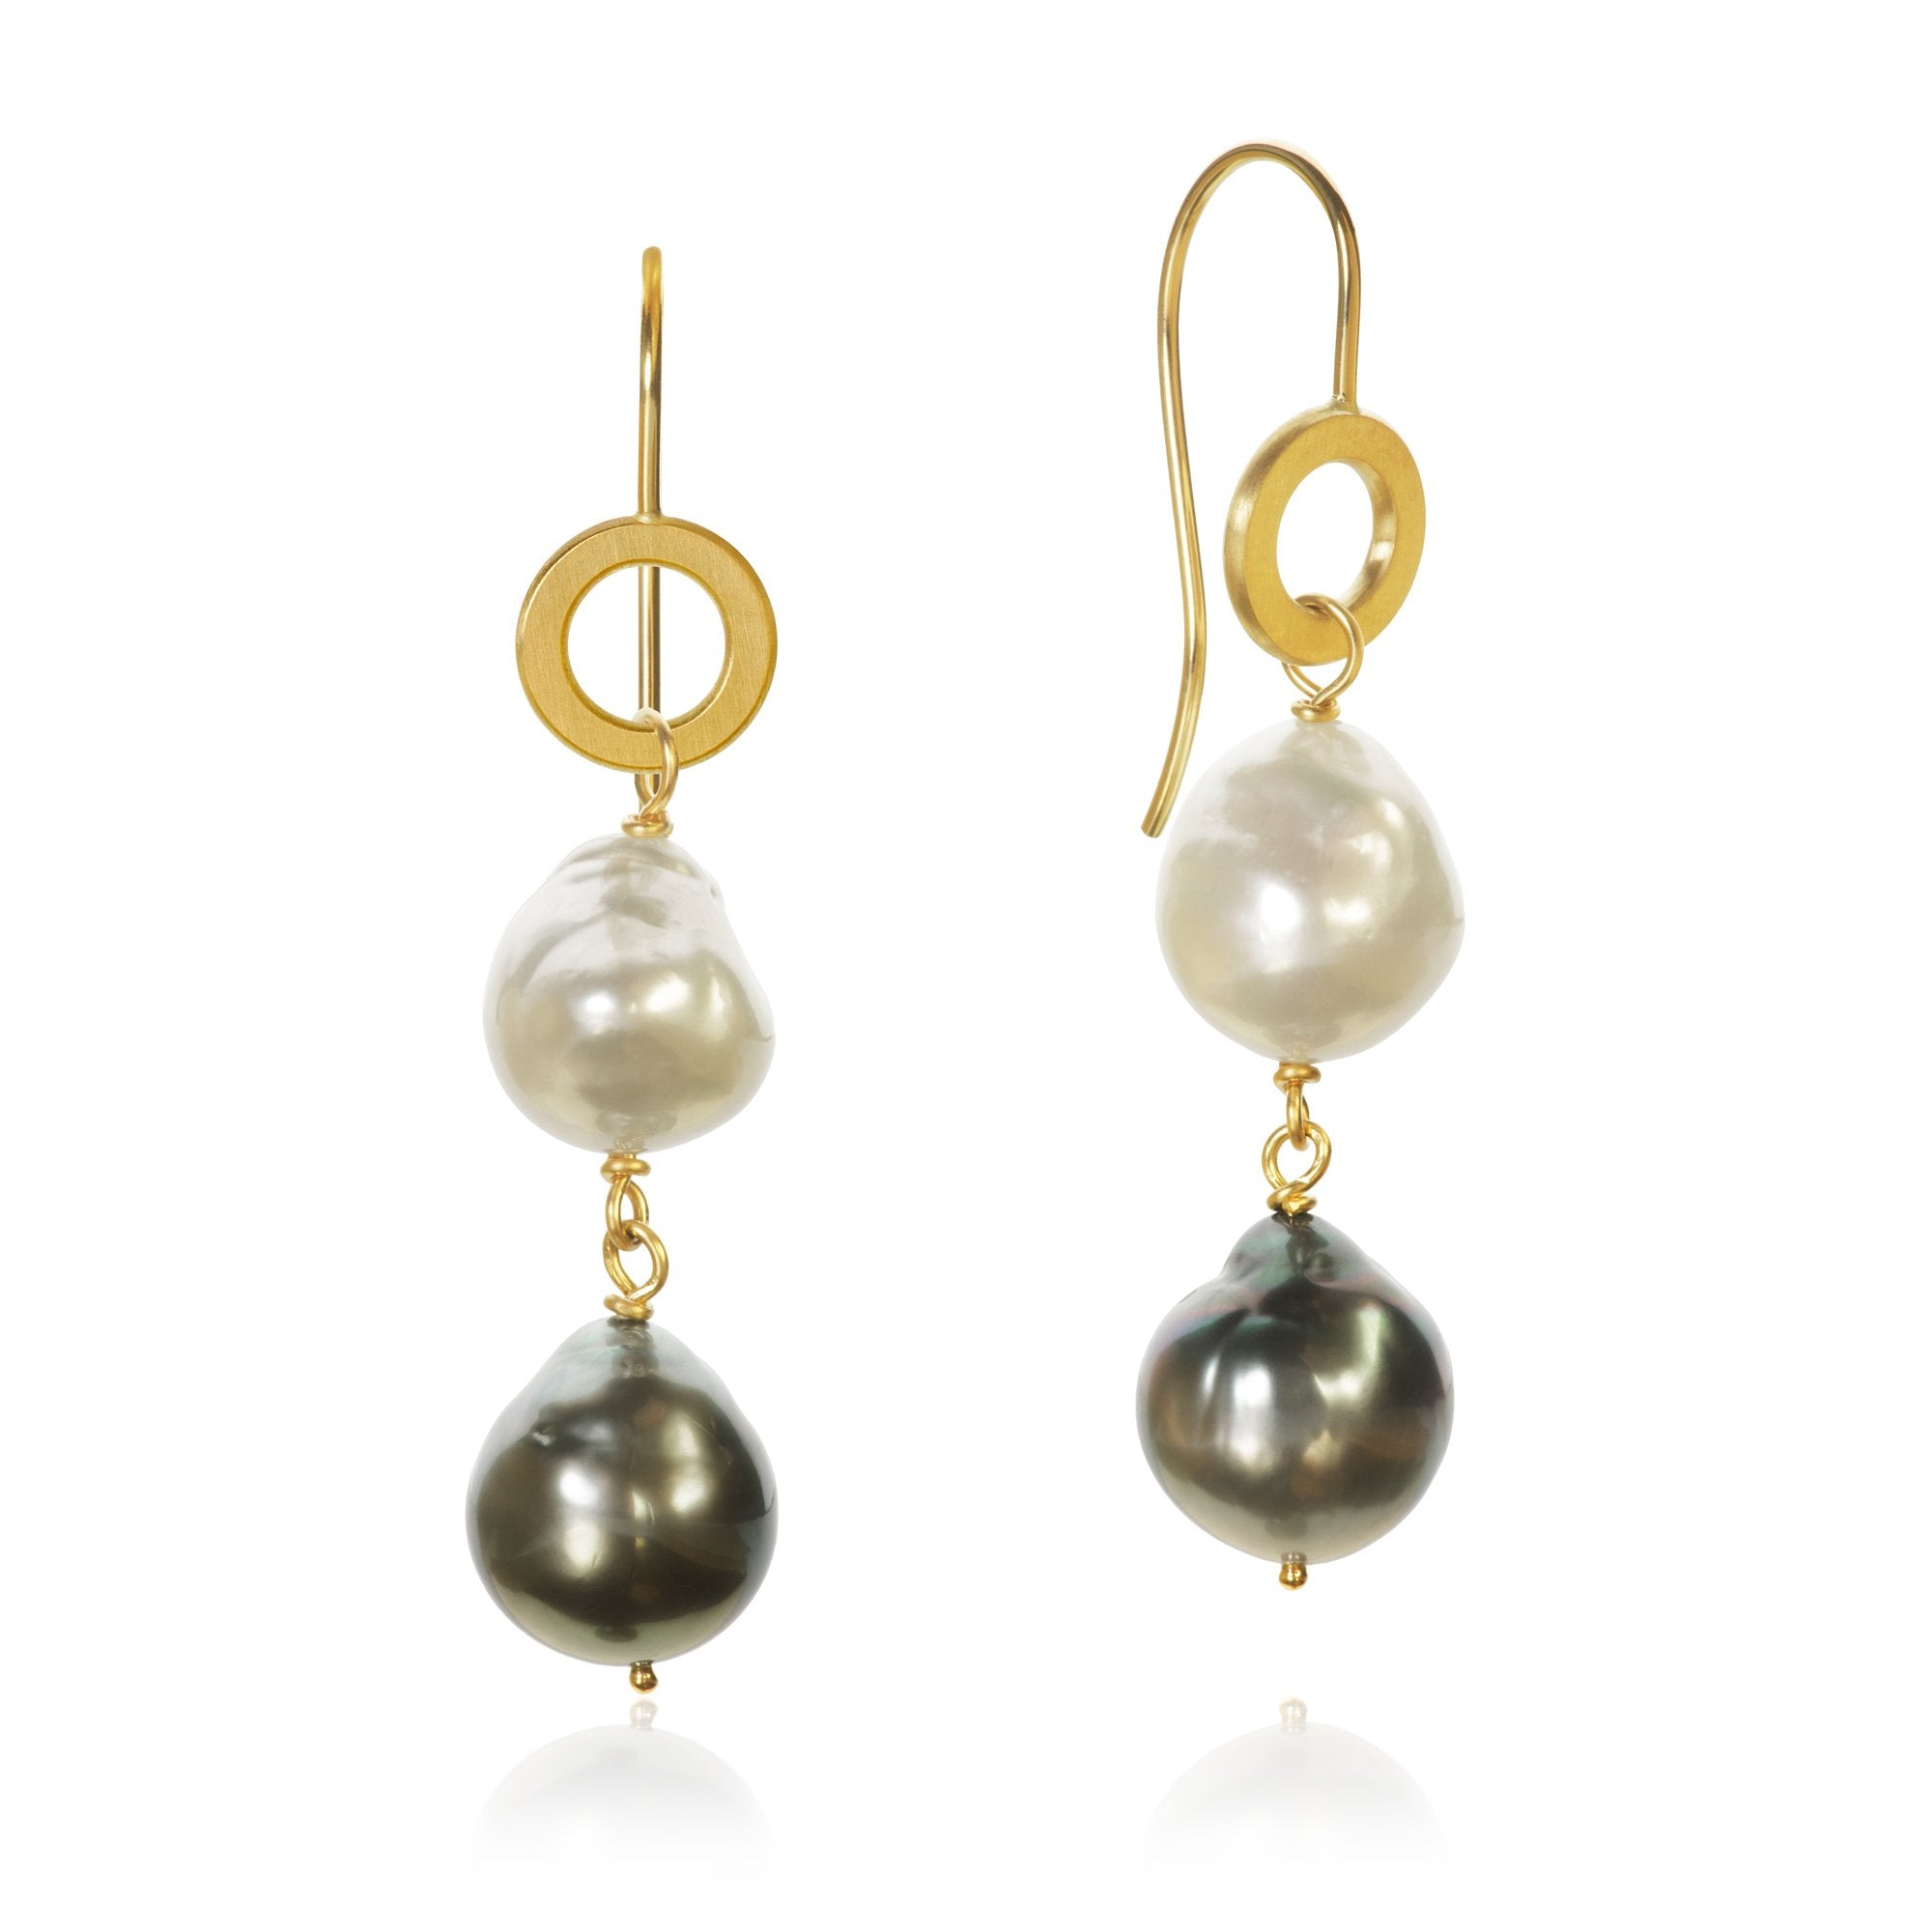 Ocean pearl earrings. With baroque South Sea pearls and Tahitian pearls.